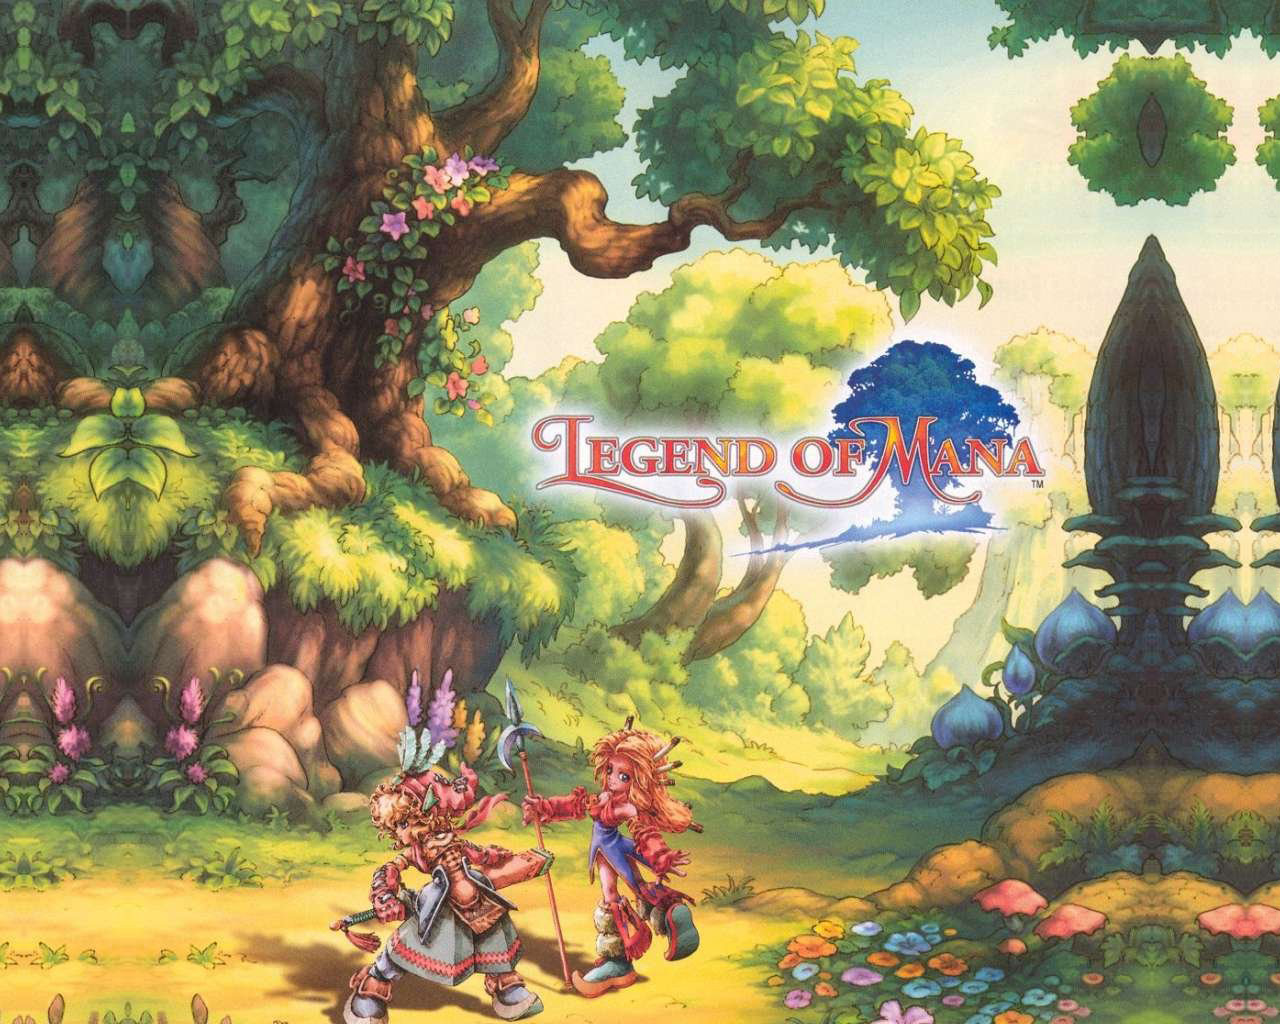 Legend of Mana Review – Part 4 of 4 of Secret of Mana Review Series